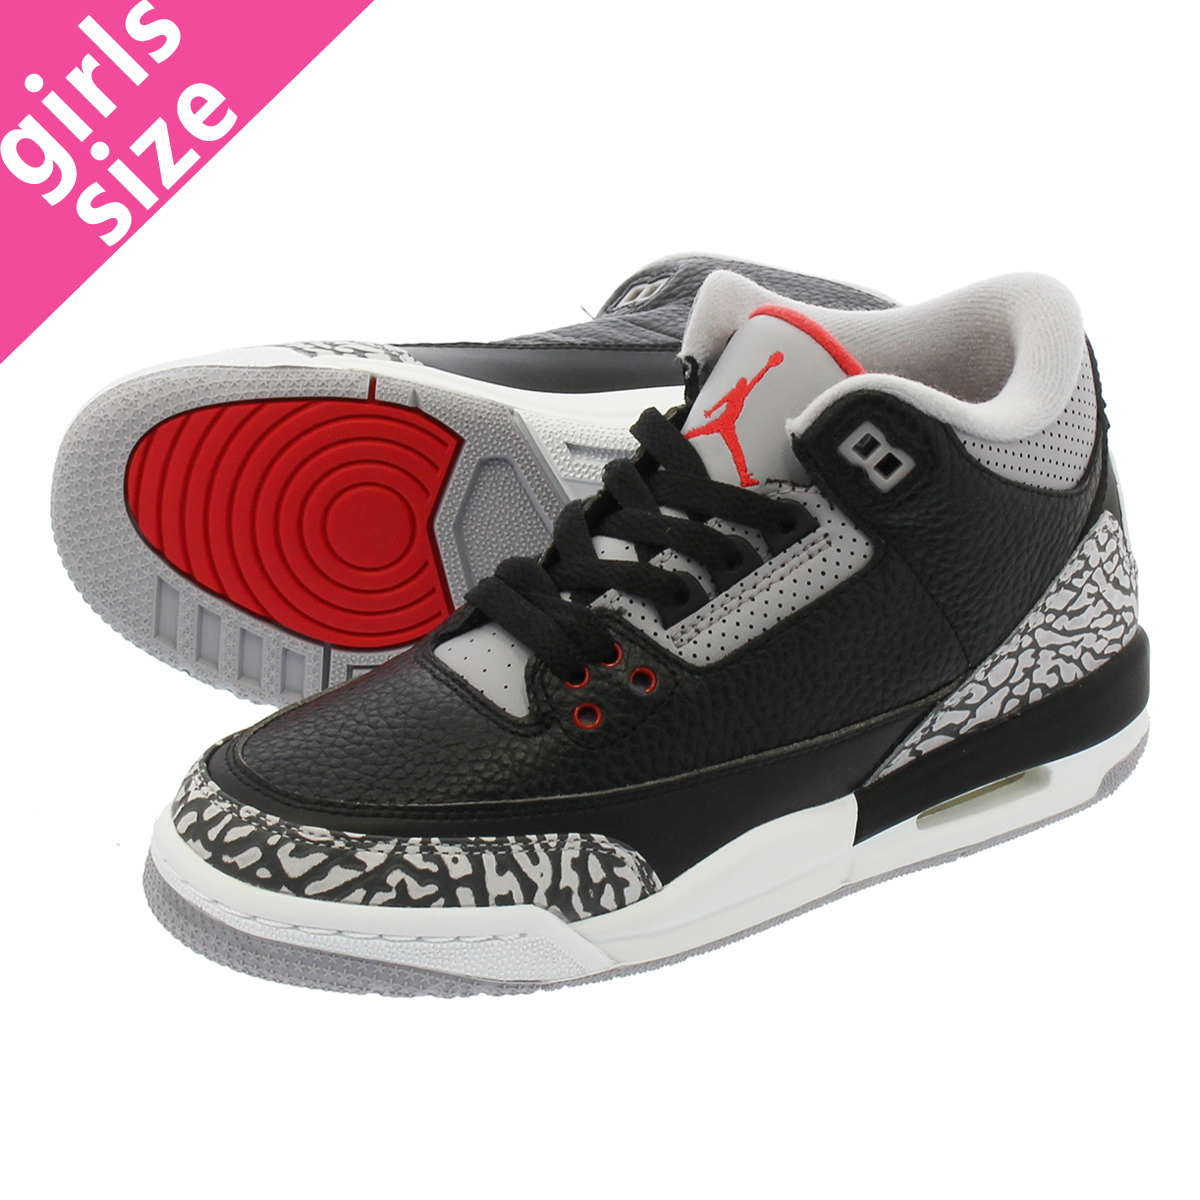 e214bd5be29 NIKE AIR JORDAN 3 RETRO OG BG Nike air Jordan 3 nostalgic OG BG BLACK/FIRE  RED/CEMENT GREY/WHITE 854,261-001